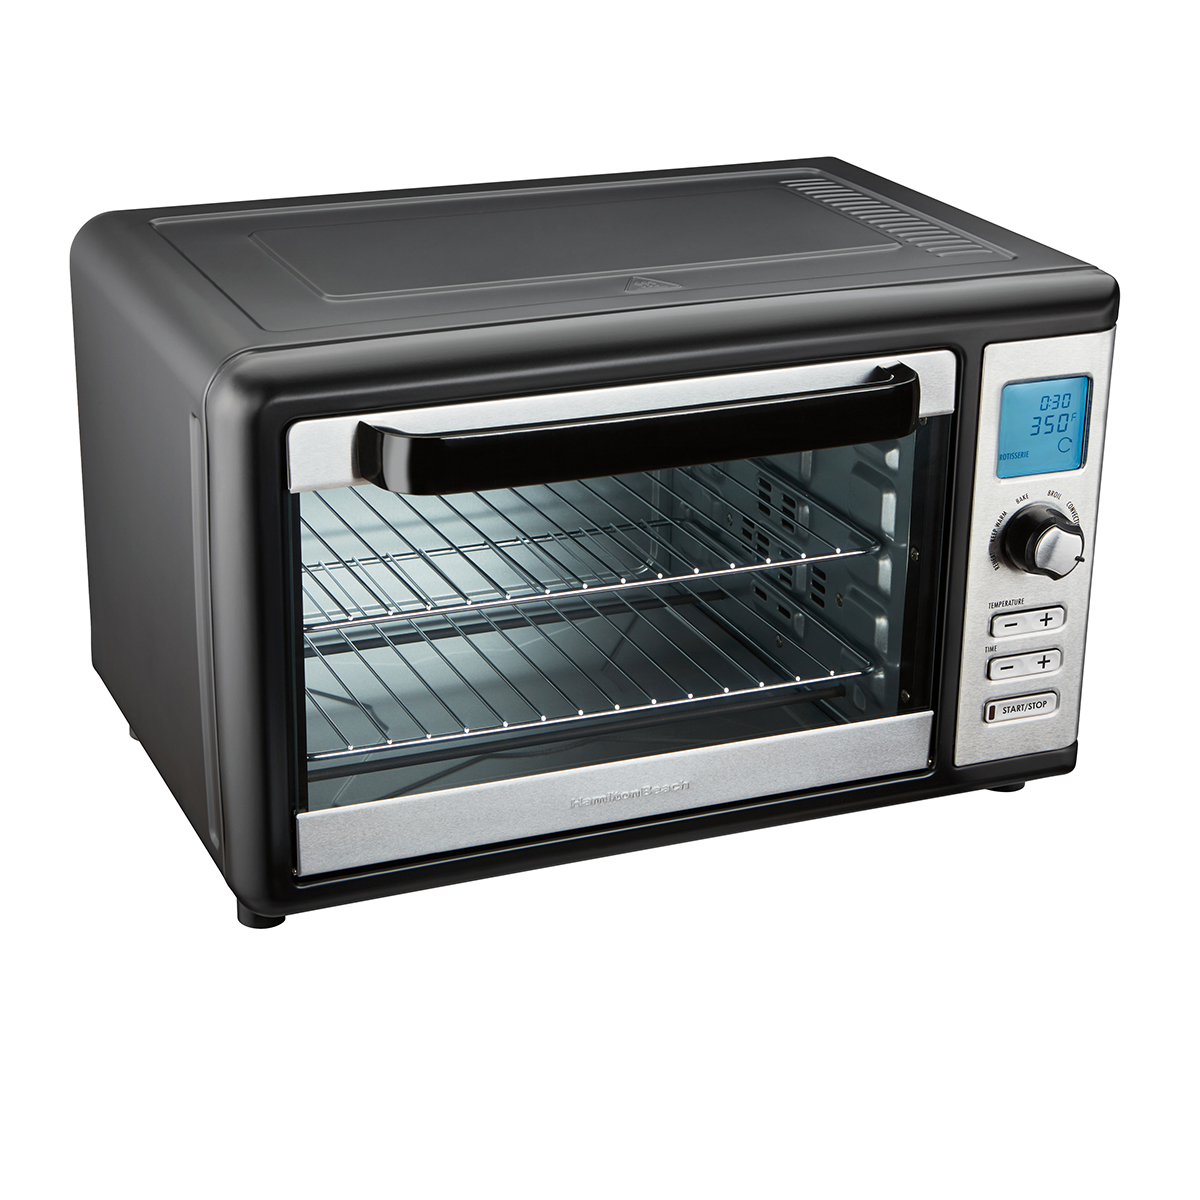 Digital Countertop Oven with Convection and Rotisserie (31154)